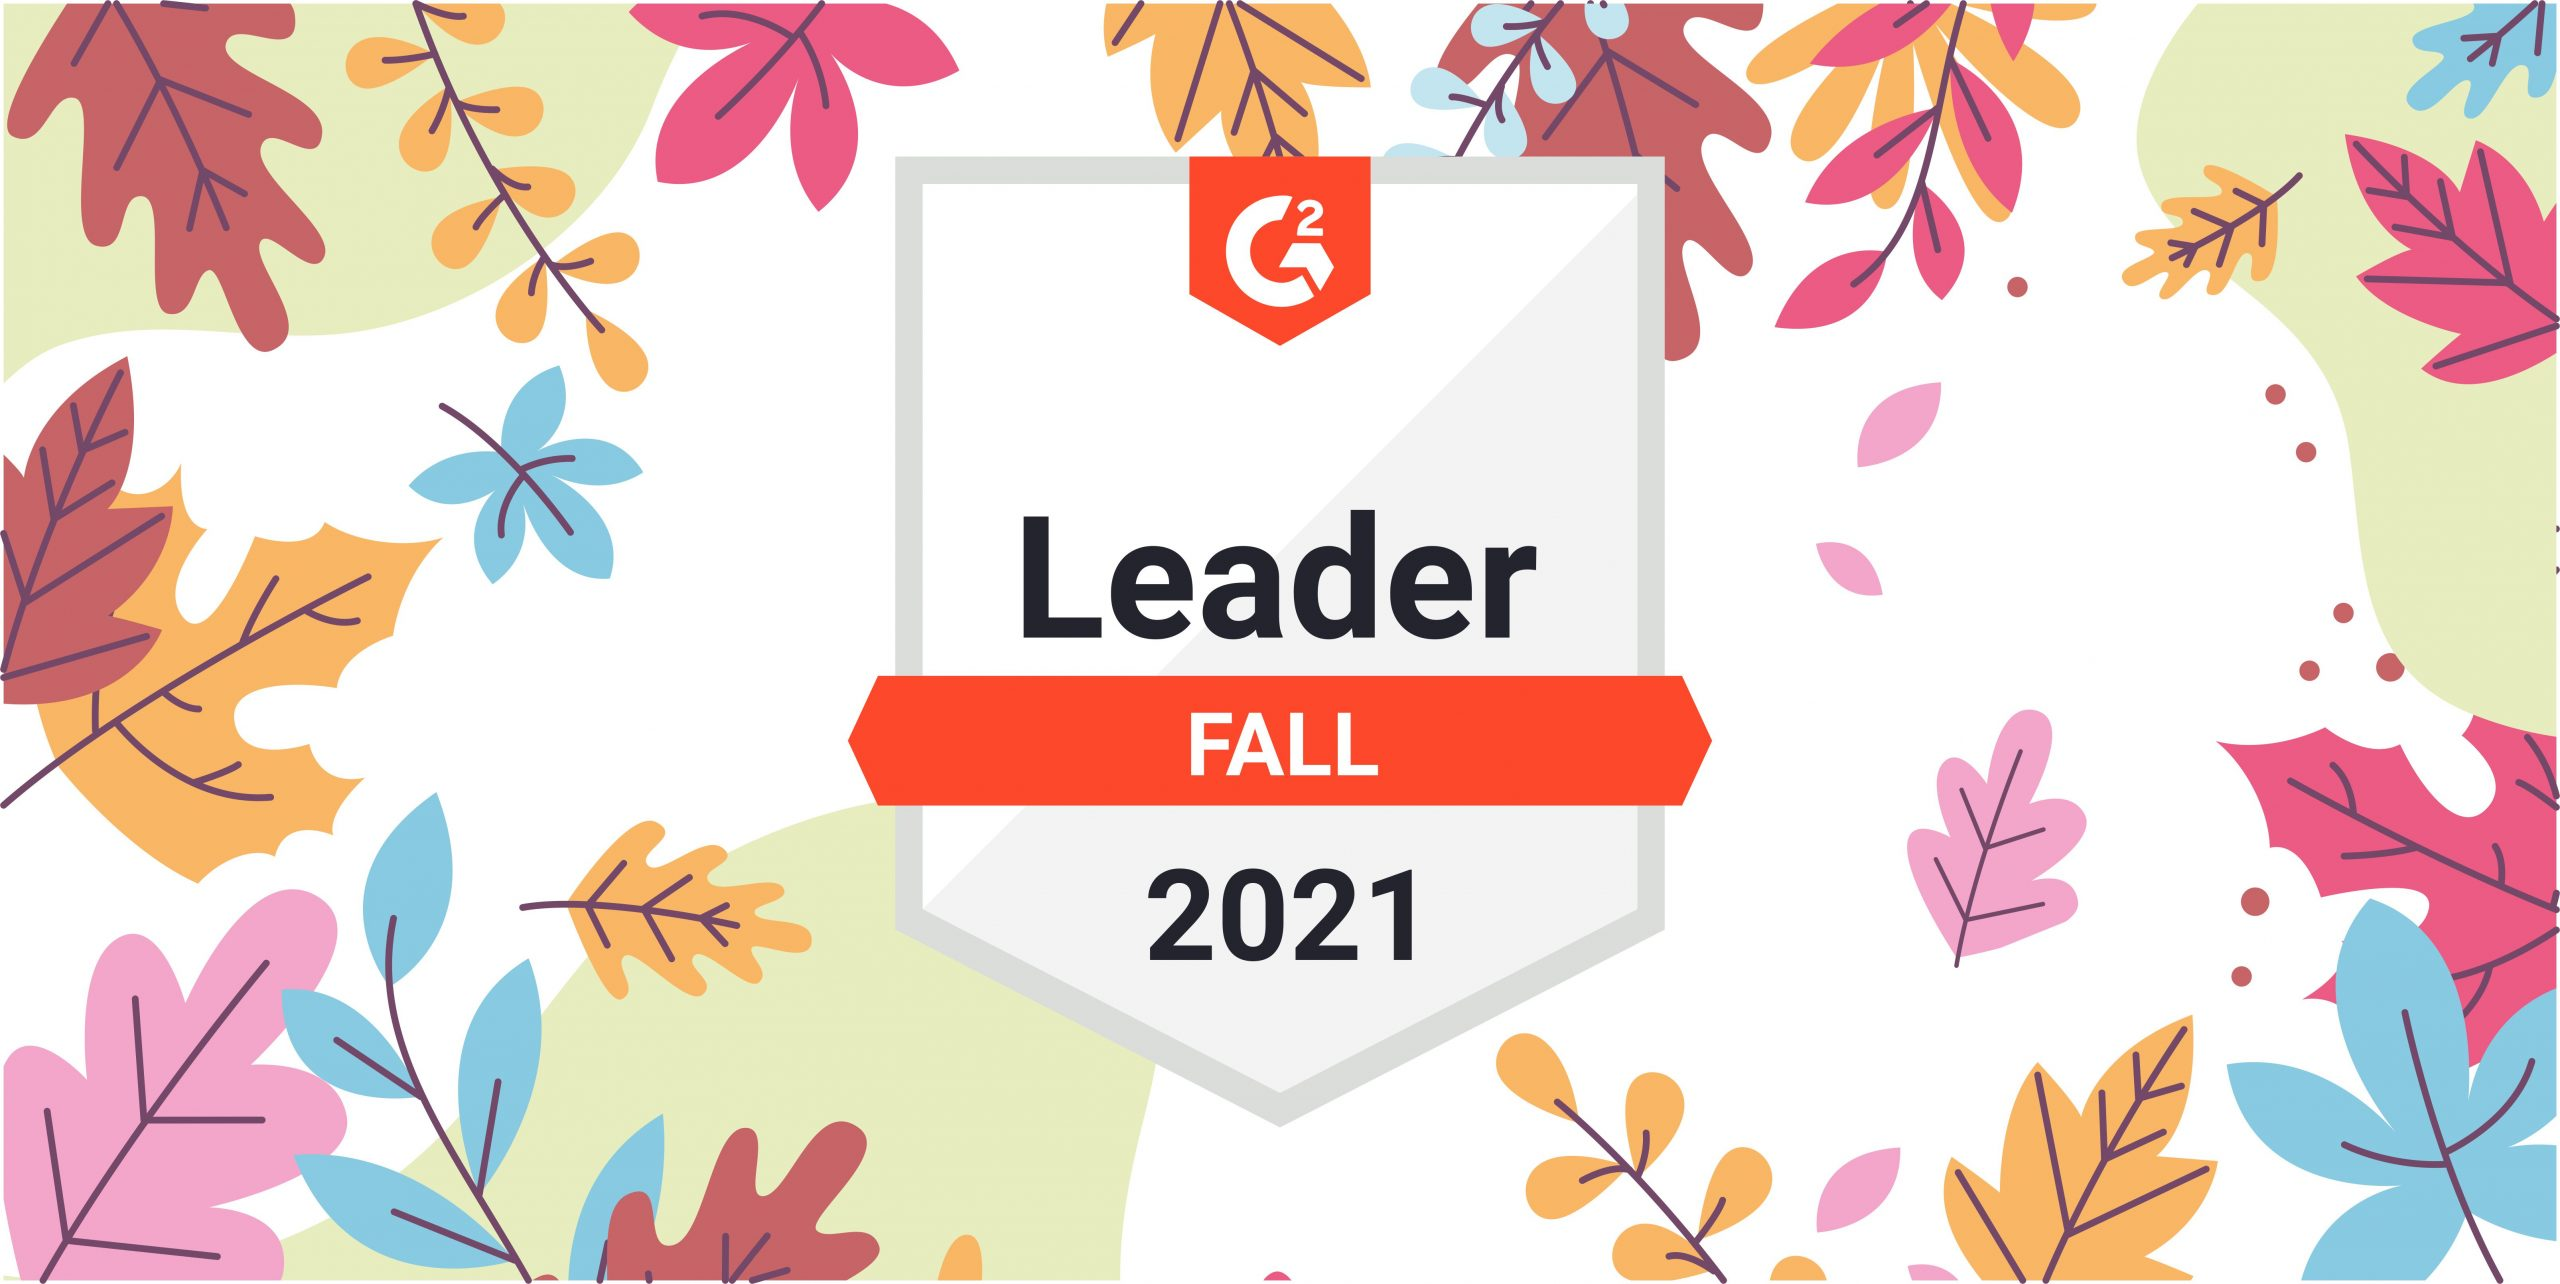 Snov.io Recognized Among Fall 2021 Leaders According To G2